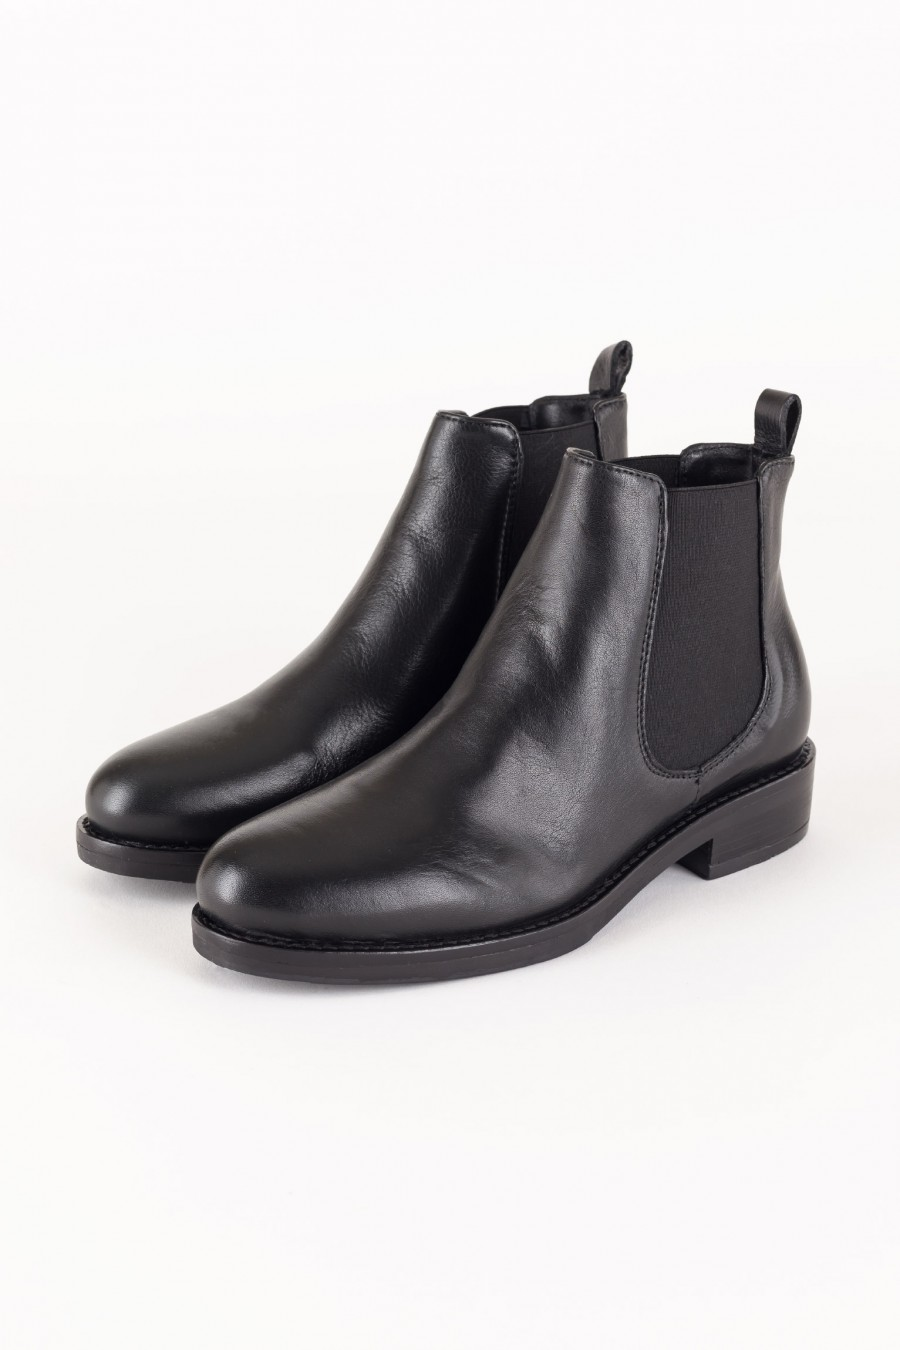 Leather beatles boots